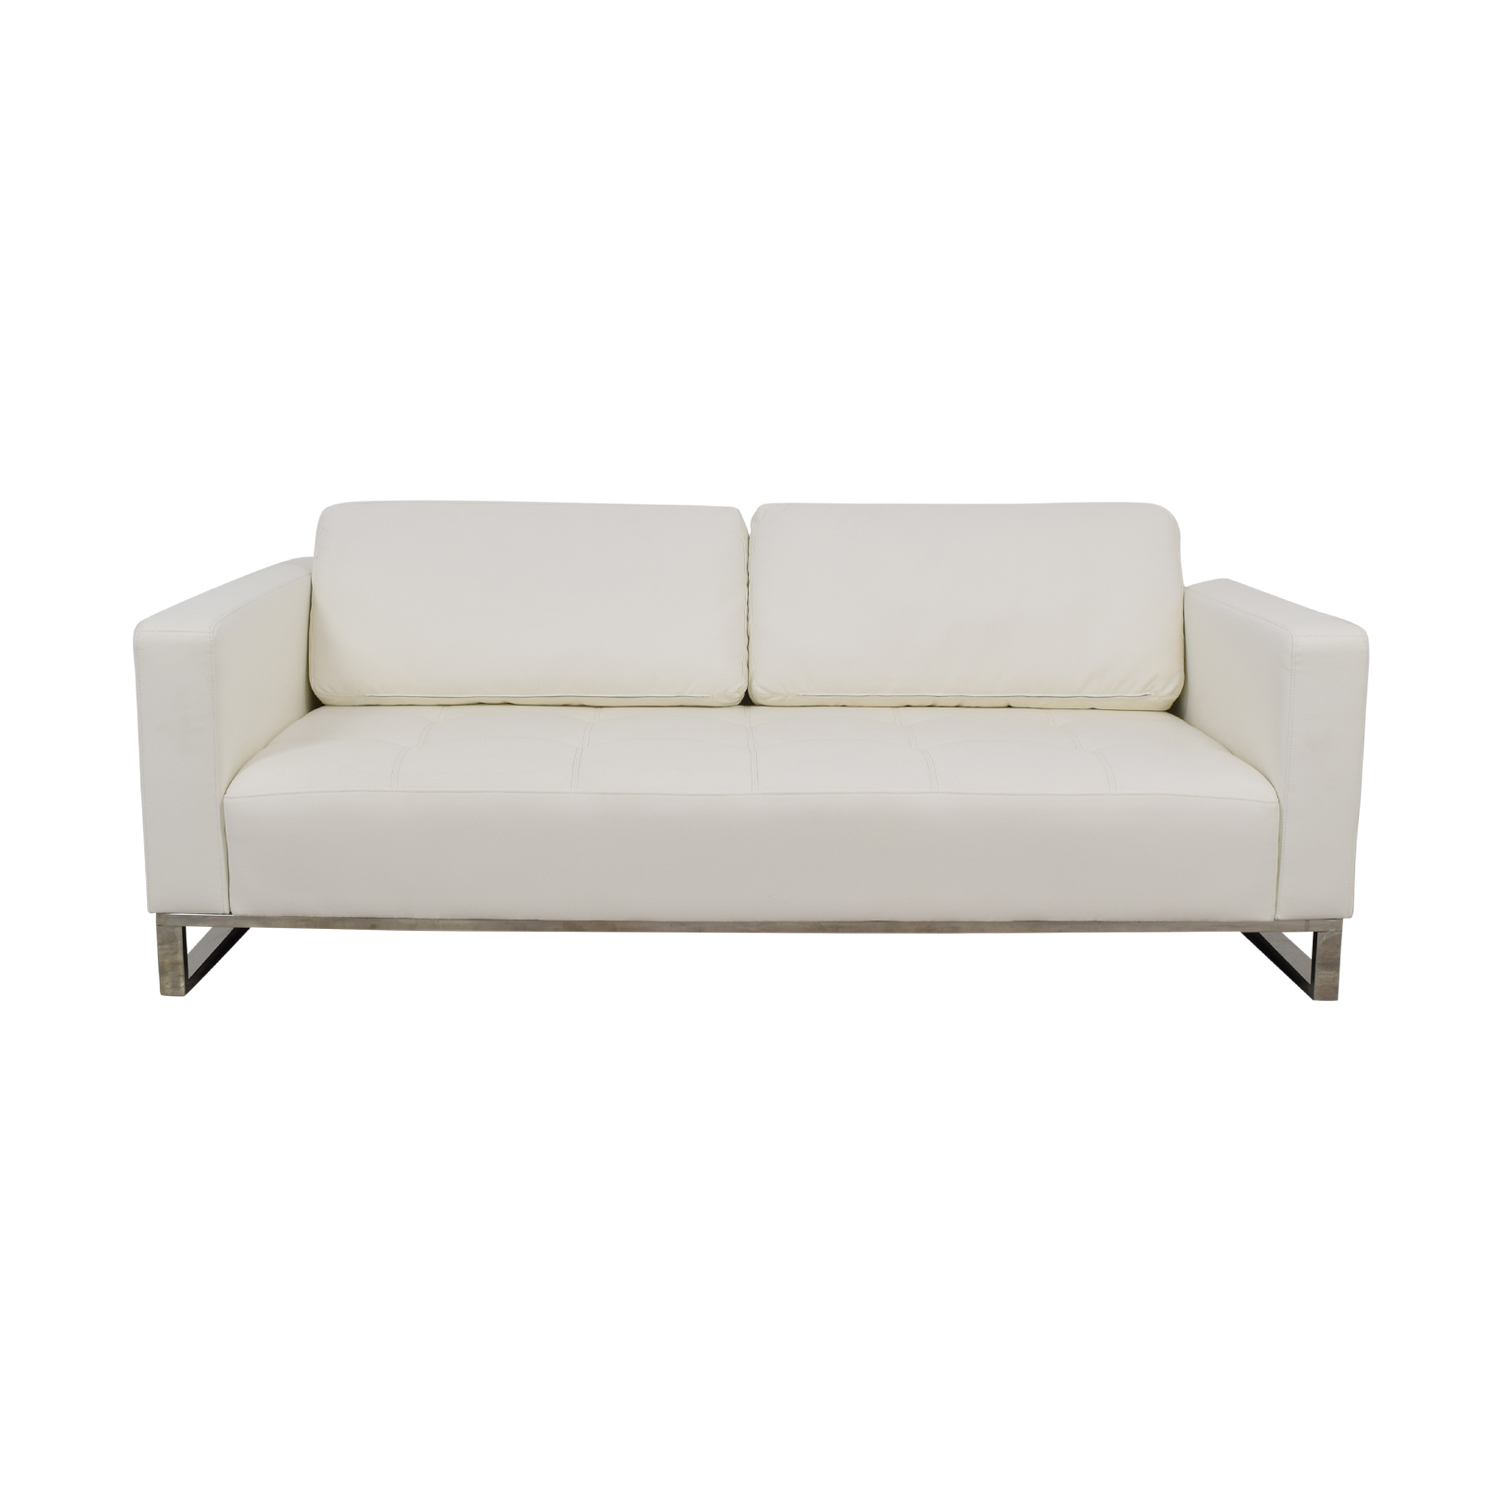 Modani Modani Convertible Eco Leather White Nelson Sofa nyc